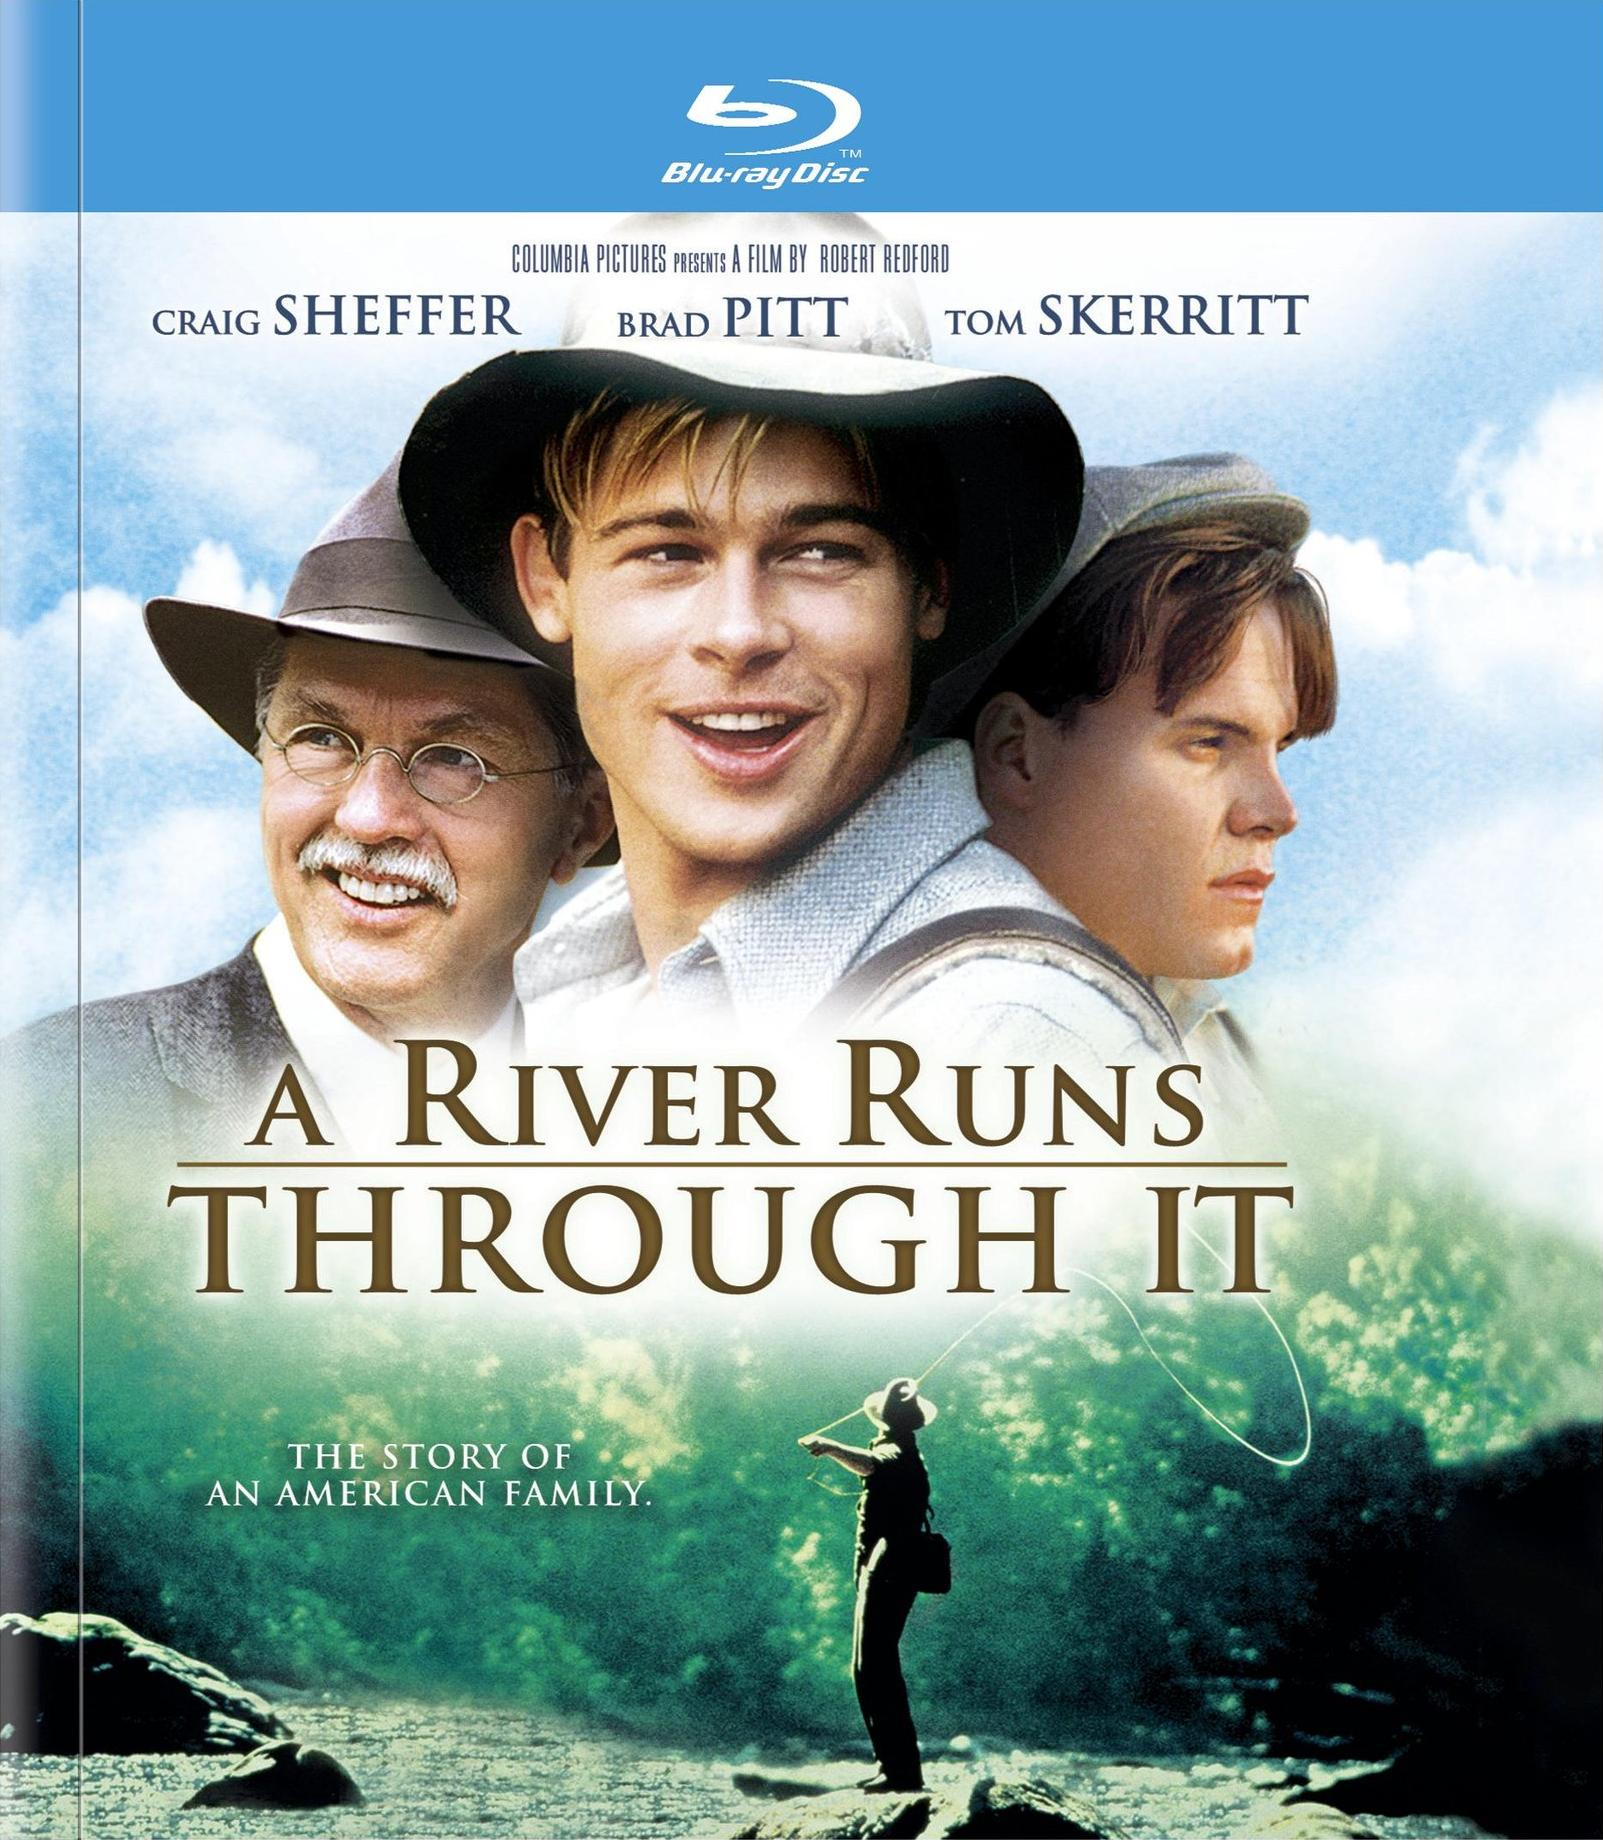 essay on a river runs through it movie An essay or paper on analysis on a river runs through it norman mcleans a river runs through it explores many feelings and experiences of one &quotturn of.